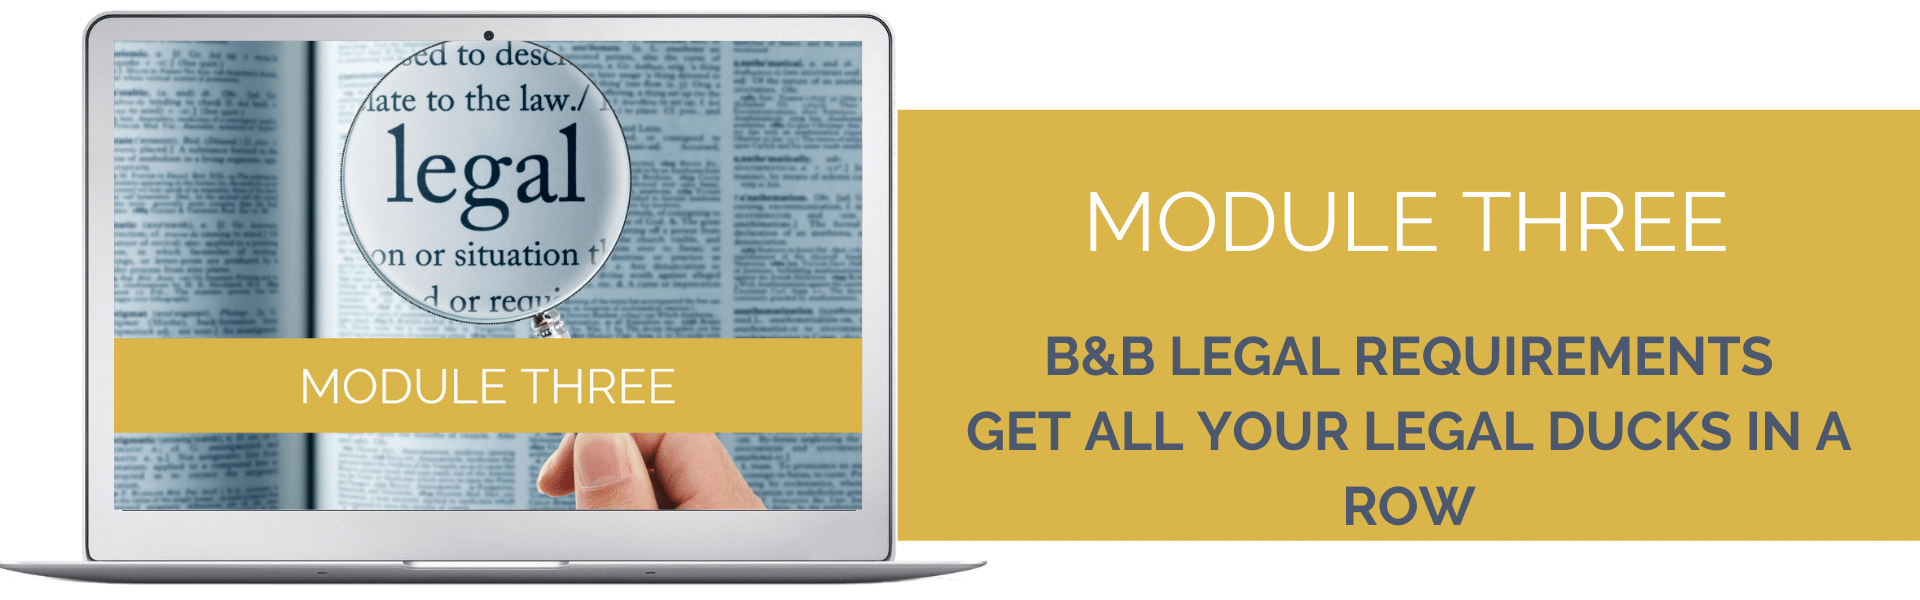 BANNER IMAGE - module 3 B&B legal requirements